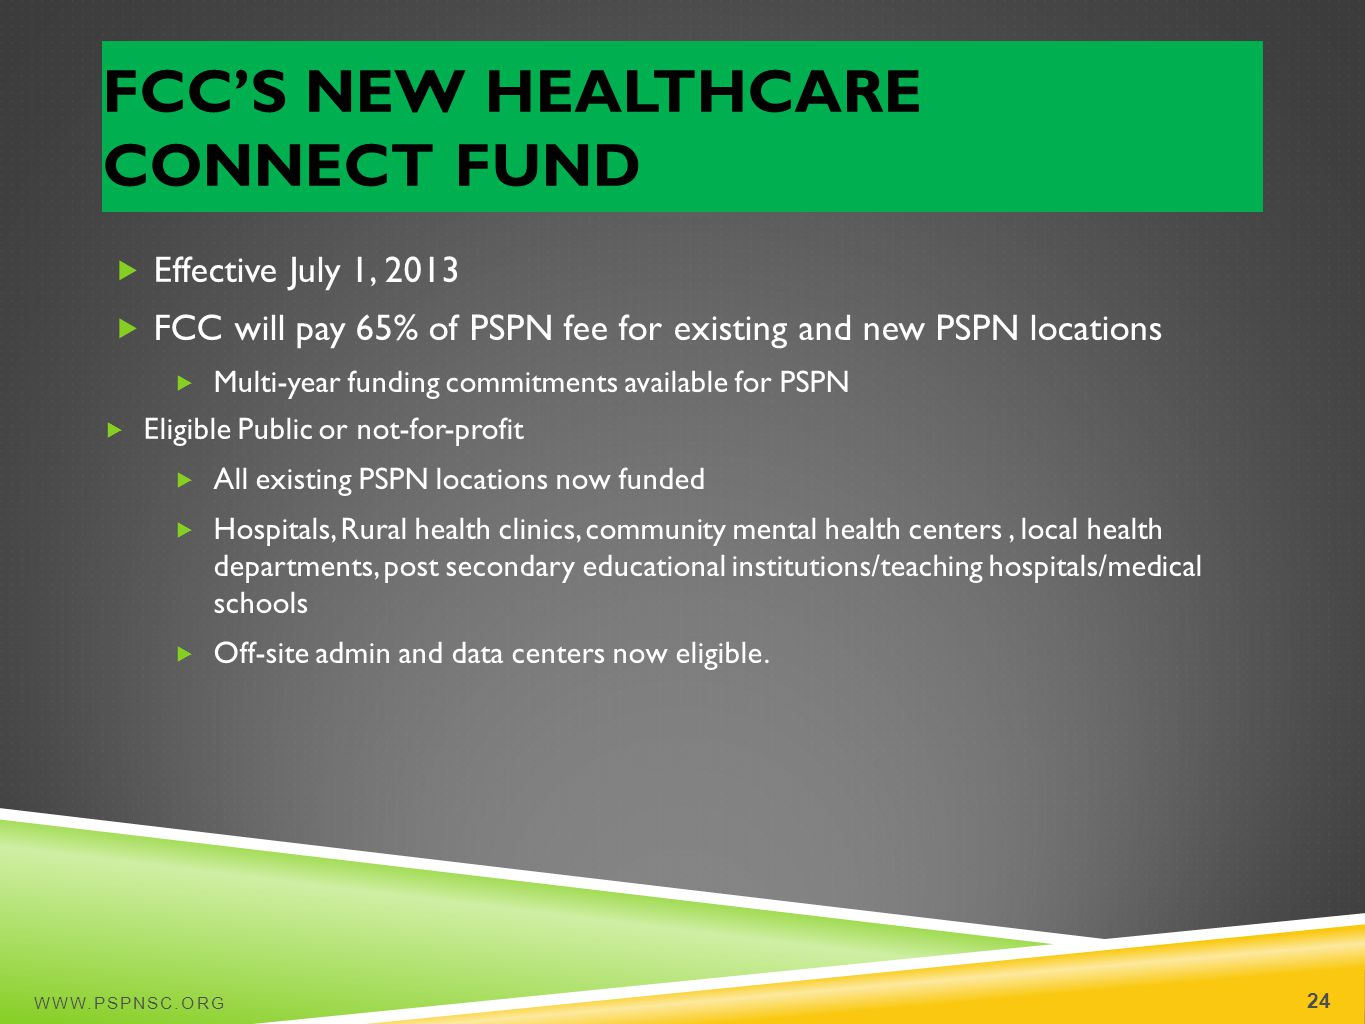 FCCS NEW HEALTHCARE CONNECT FUND WWW.PSPNSC.ORG 24 Effective July 1, 2013 FCC will pay 65% of PSPN fee for existing and new PSPN locations Multi-year